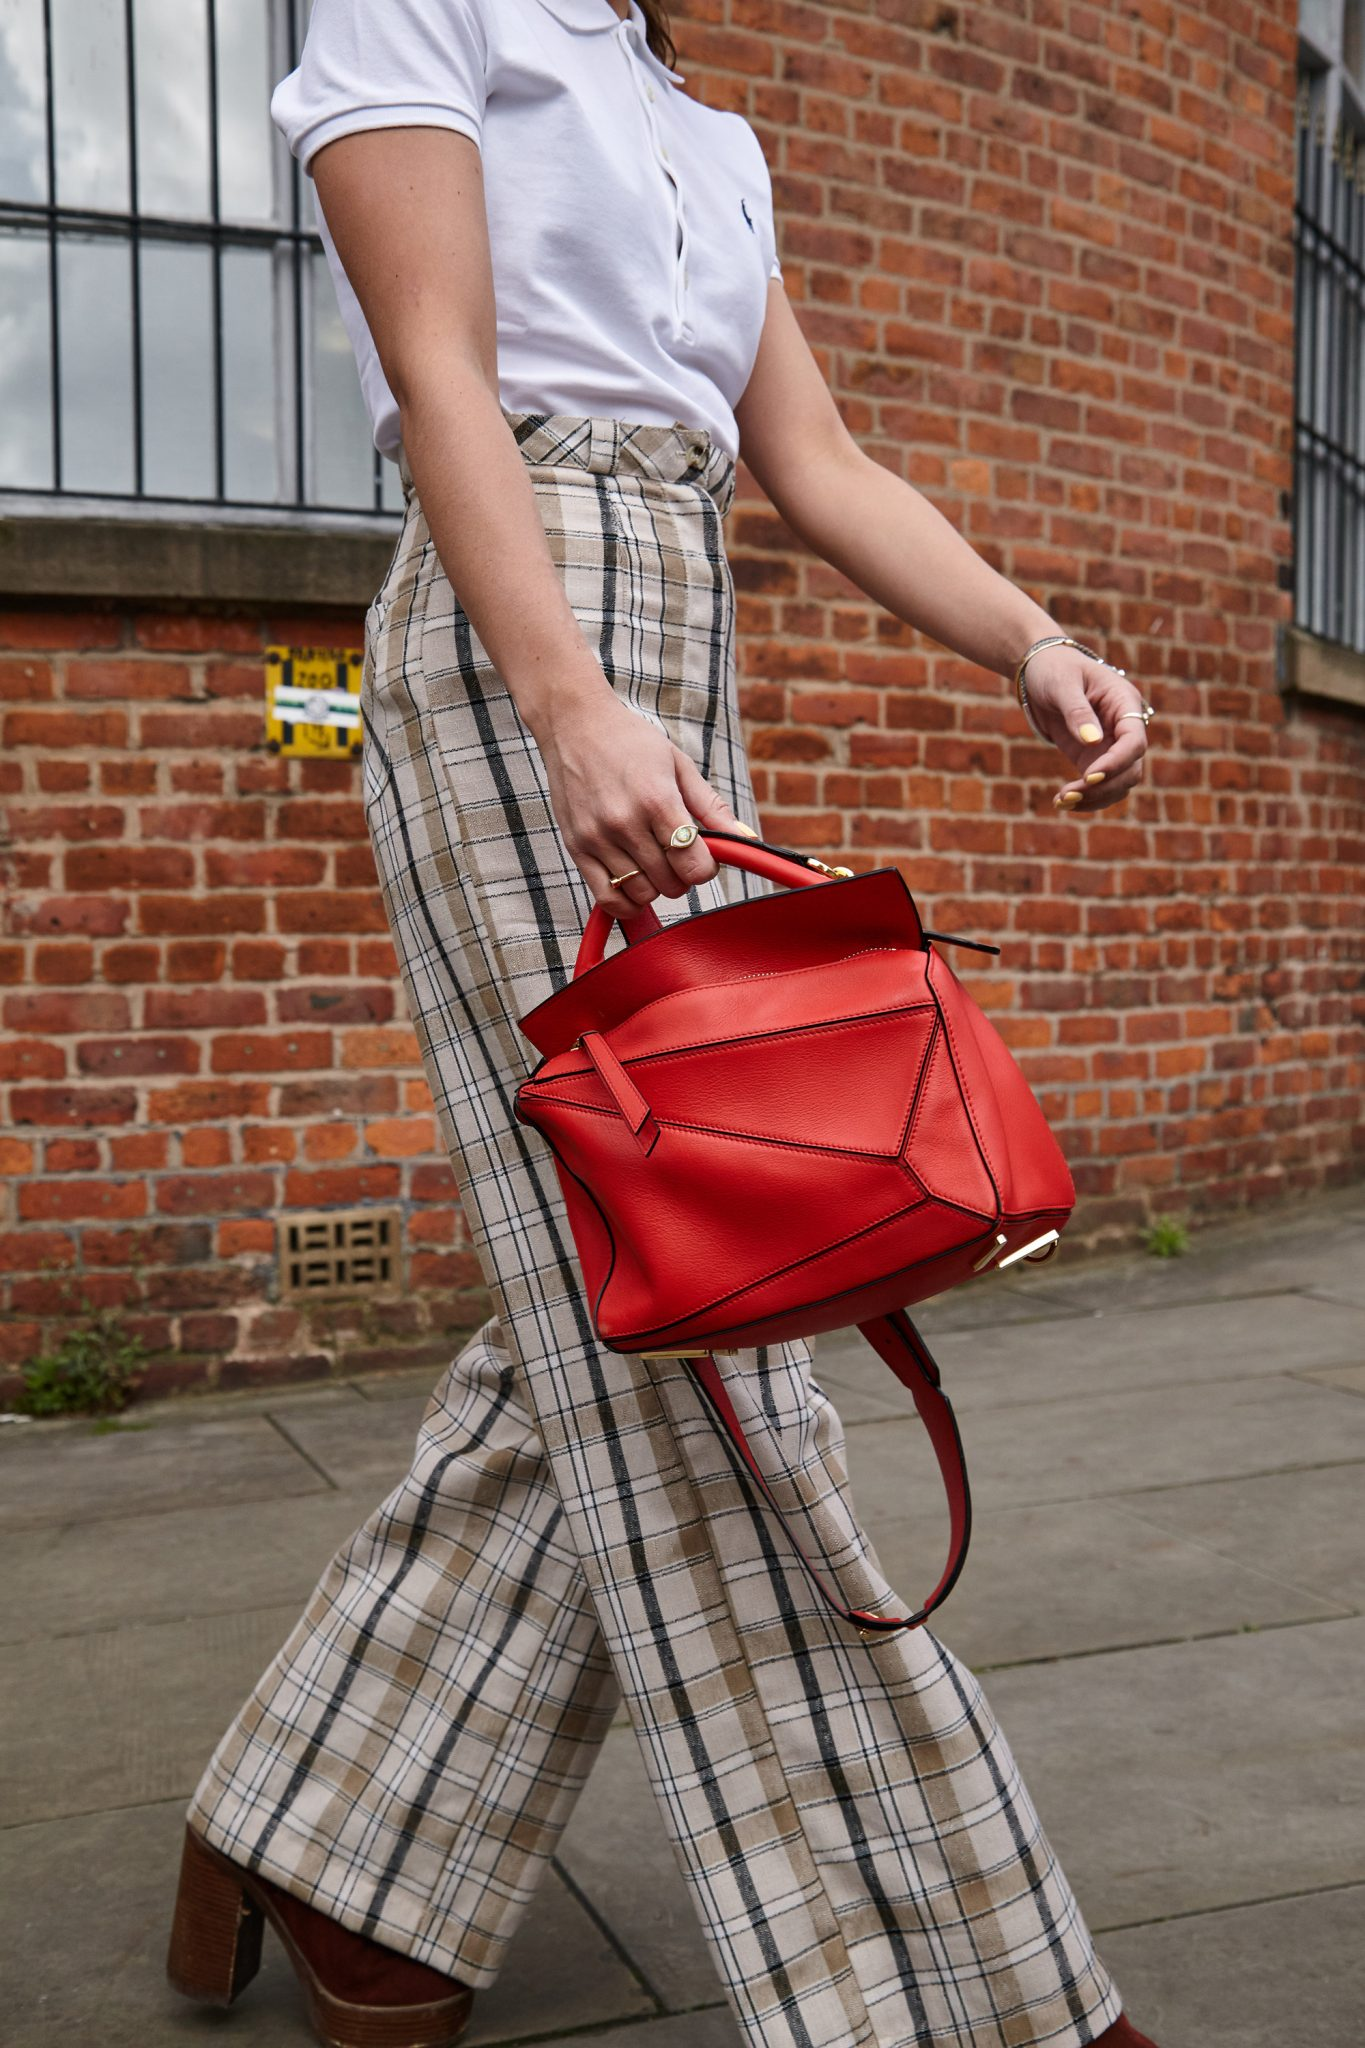 LOEWE PUZZLE BAG RED, HOW TO WEAR IT